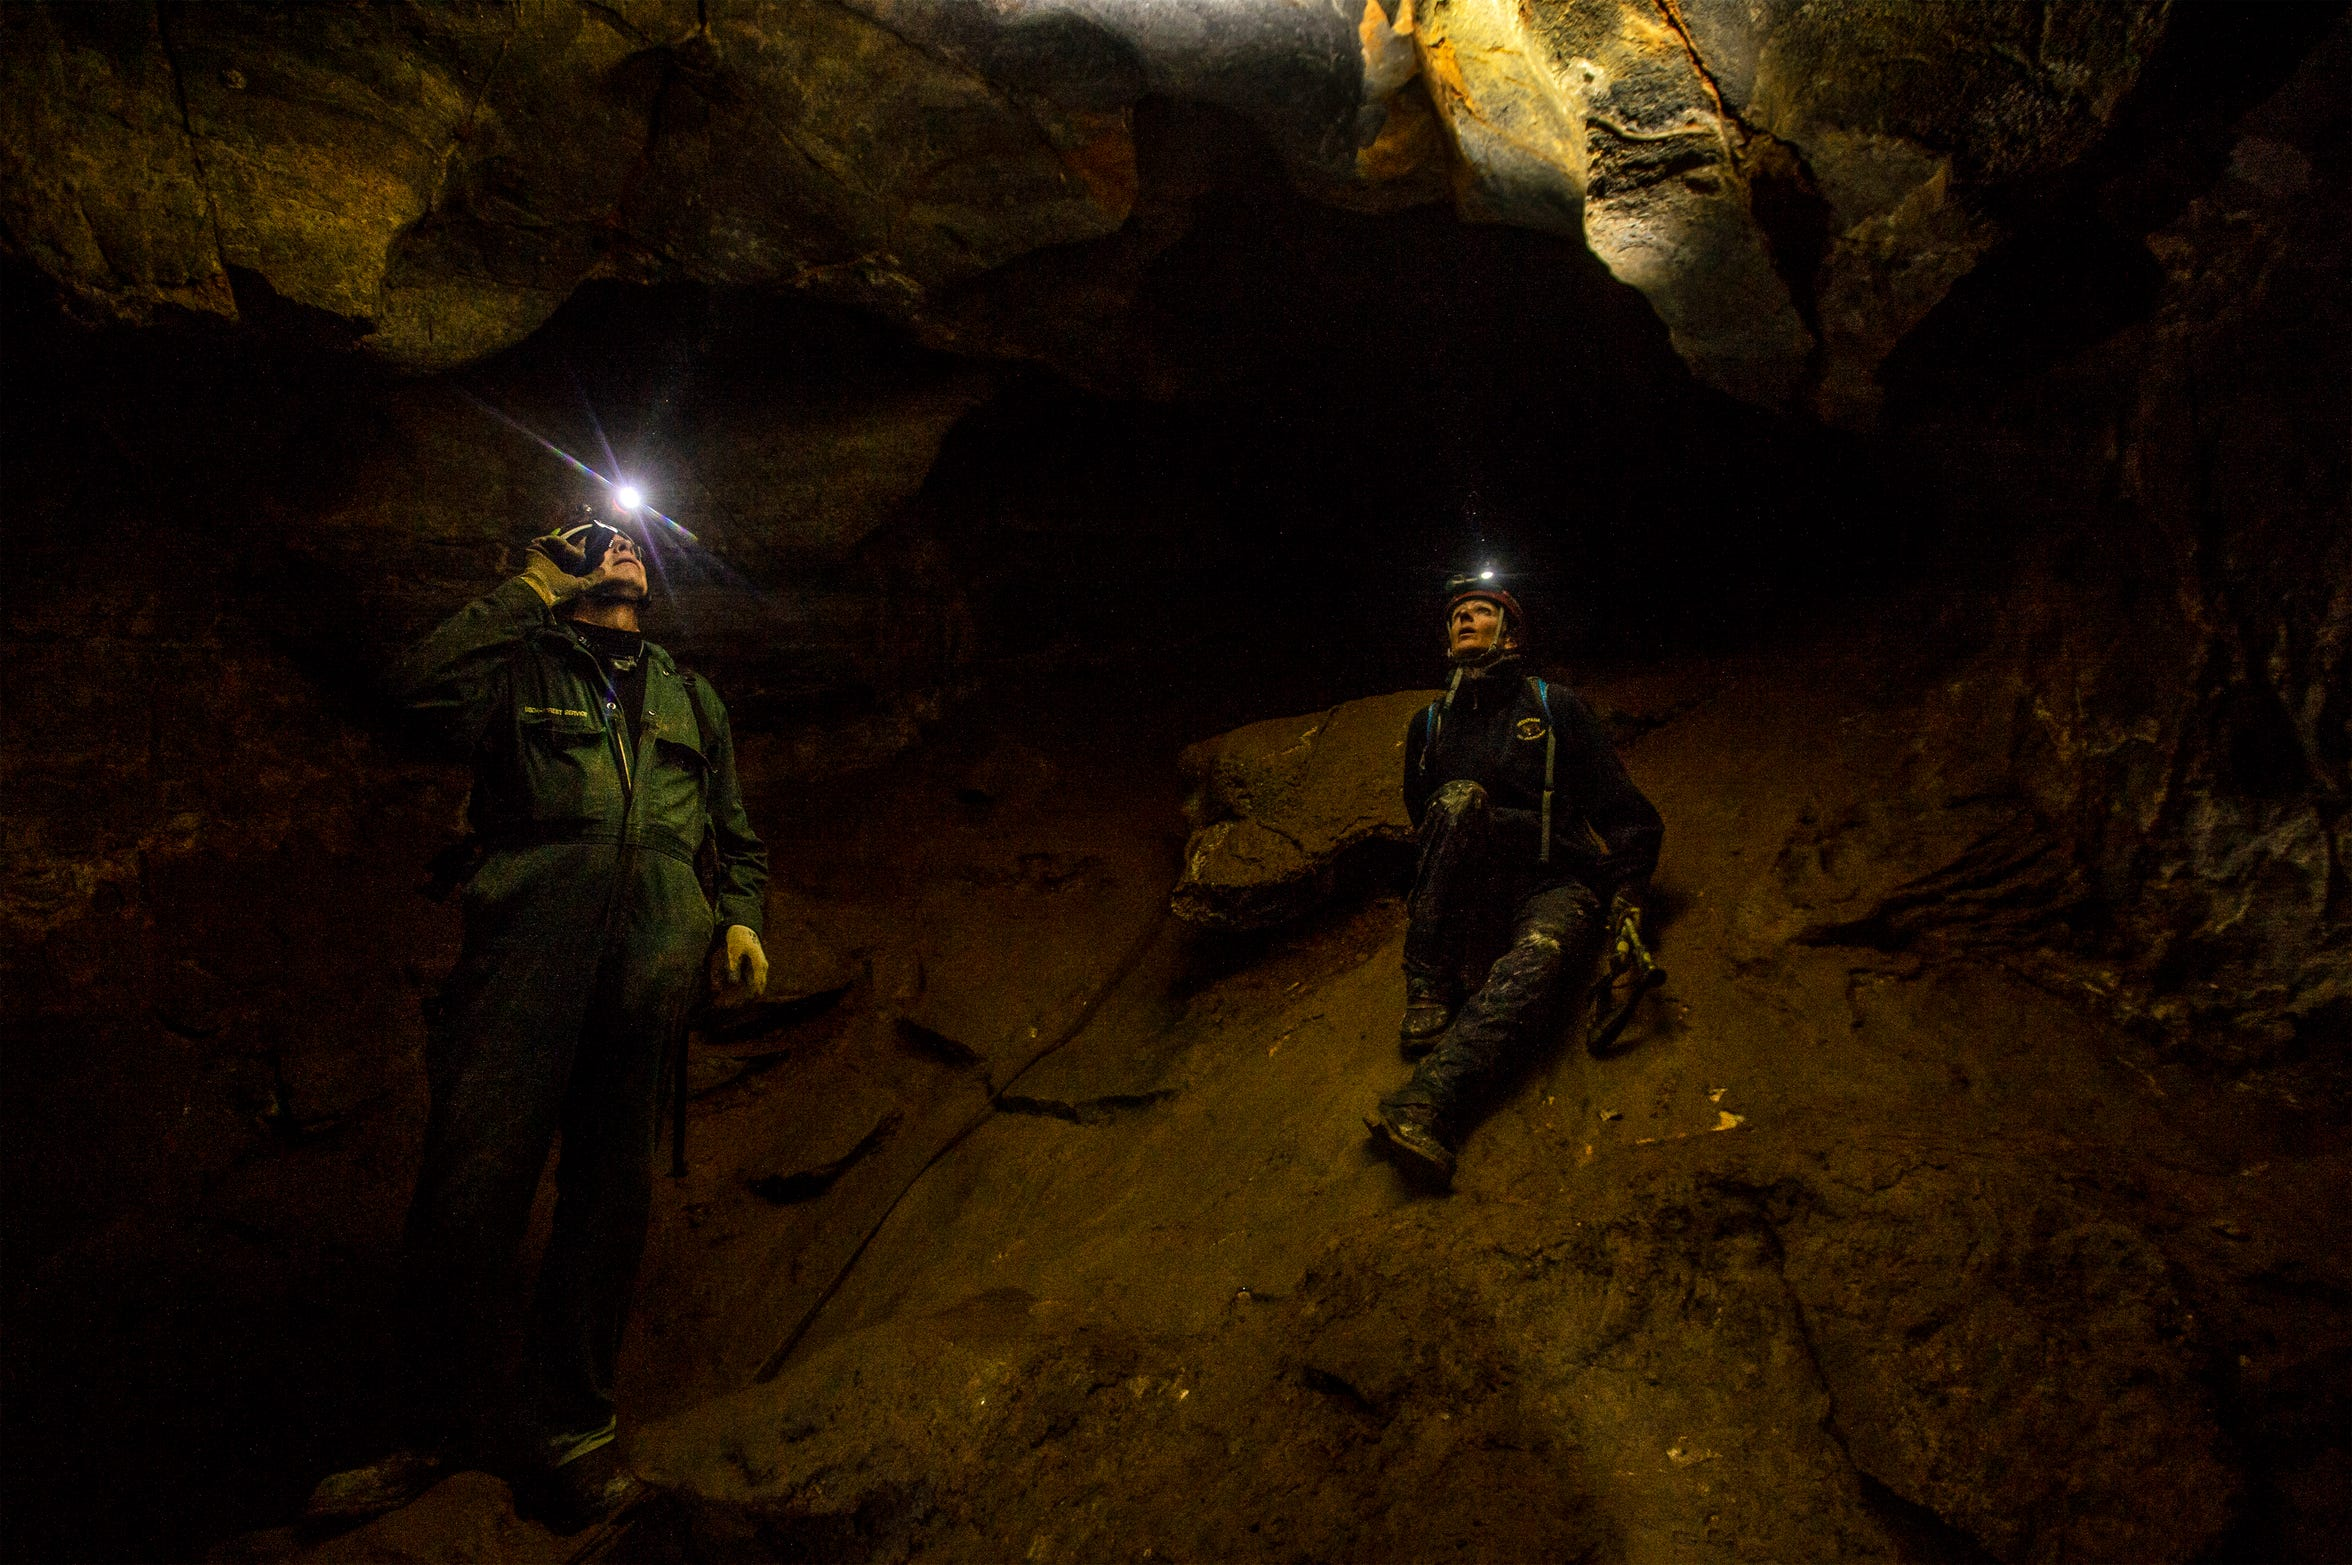 Dave Bobbitt, left, geologist with the U.S. Forest Service, and Lauri Hanauska-Brown, Non-game Wildlife Management Bureau chief for Montana Fish, Wildlife & Parks, search the walls of Lick Creek Cave in the Helena-Lewis and Clark National Forest for bats they can test for   white-nose syndrome.  The syndrome is caused by a fungus, Pseudogymnoascus destructans, which has yet to be detected in Montana but has killed millions of bats in the eastern United States and Canada.